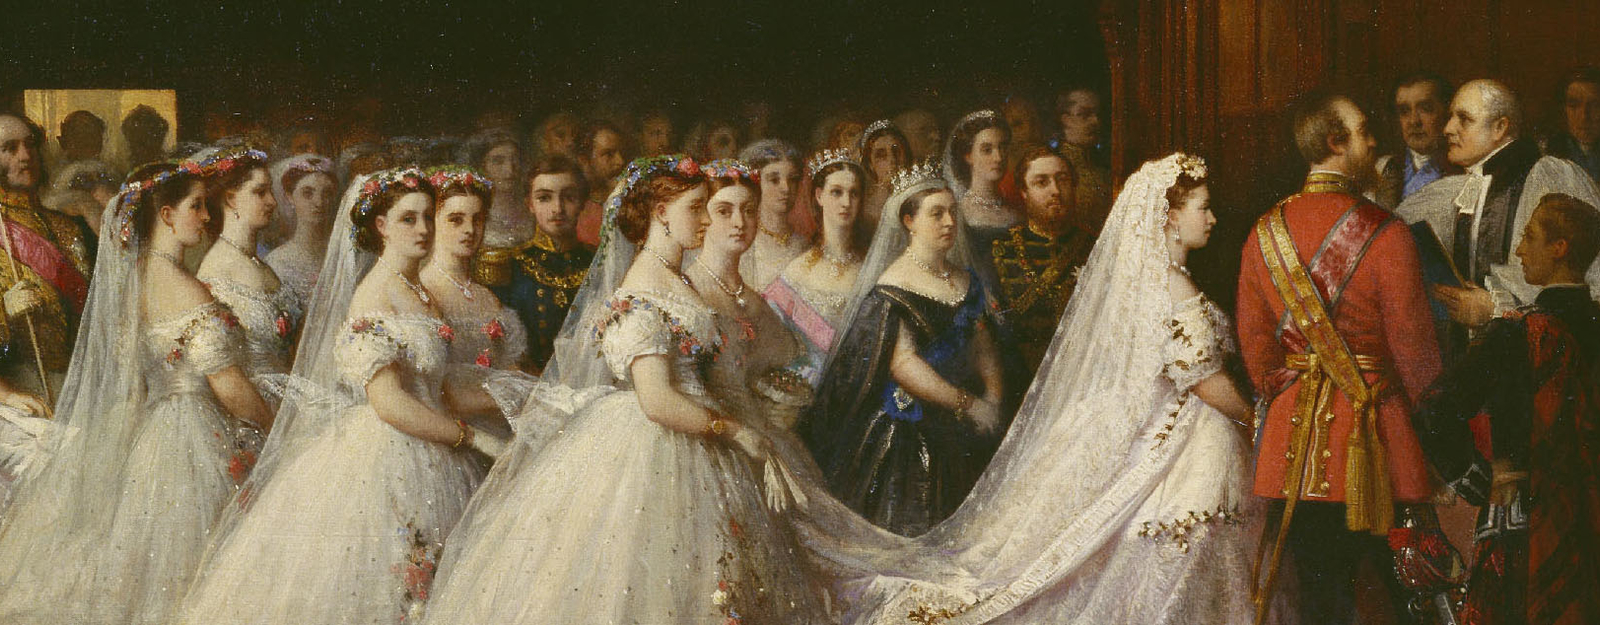 Detail from a portrait of the marriage of Princess Helena